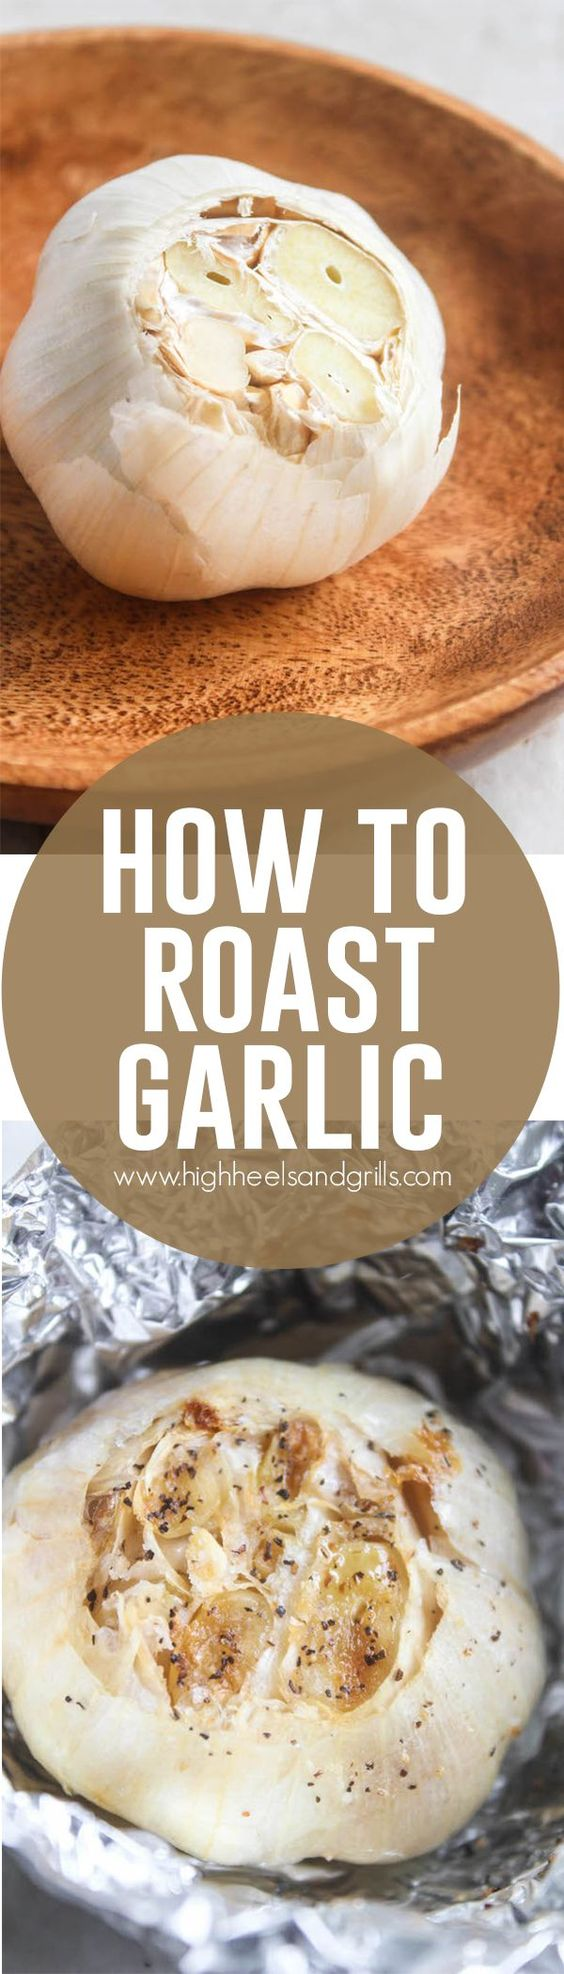 How to roast, Roasts and Garlic on Pinterest